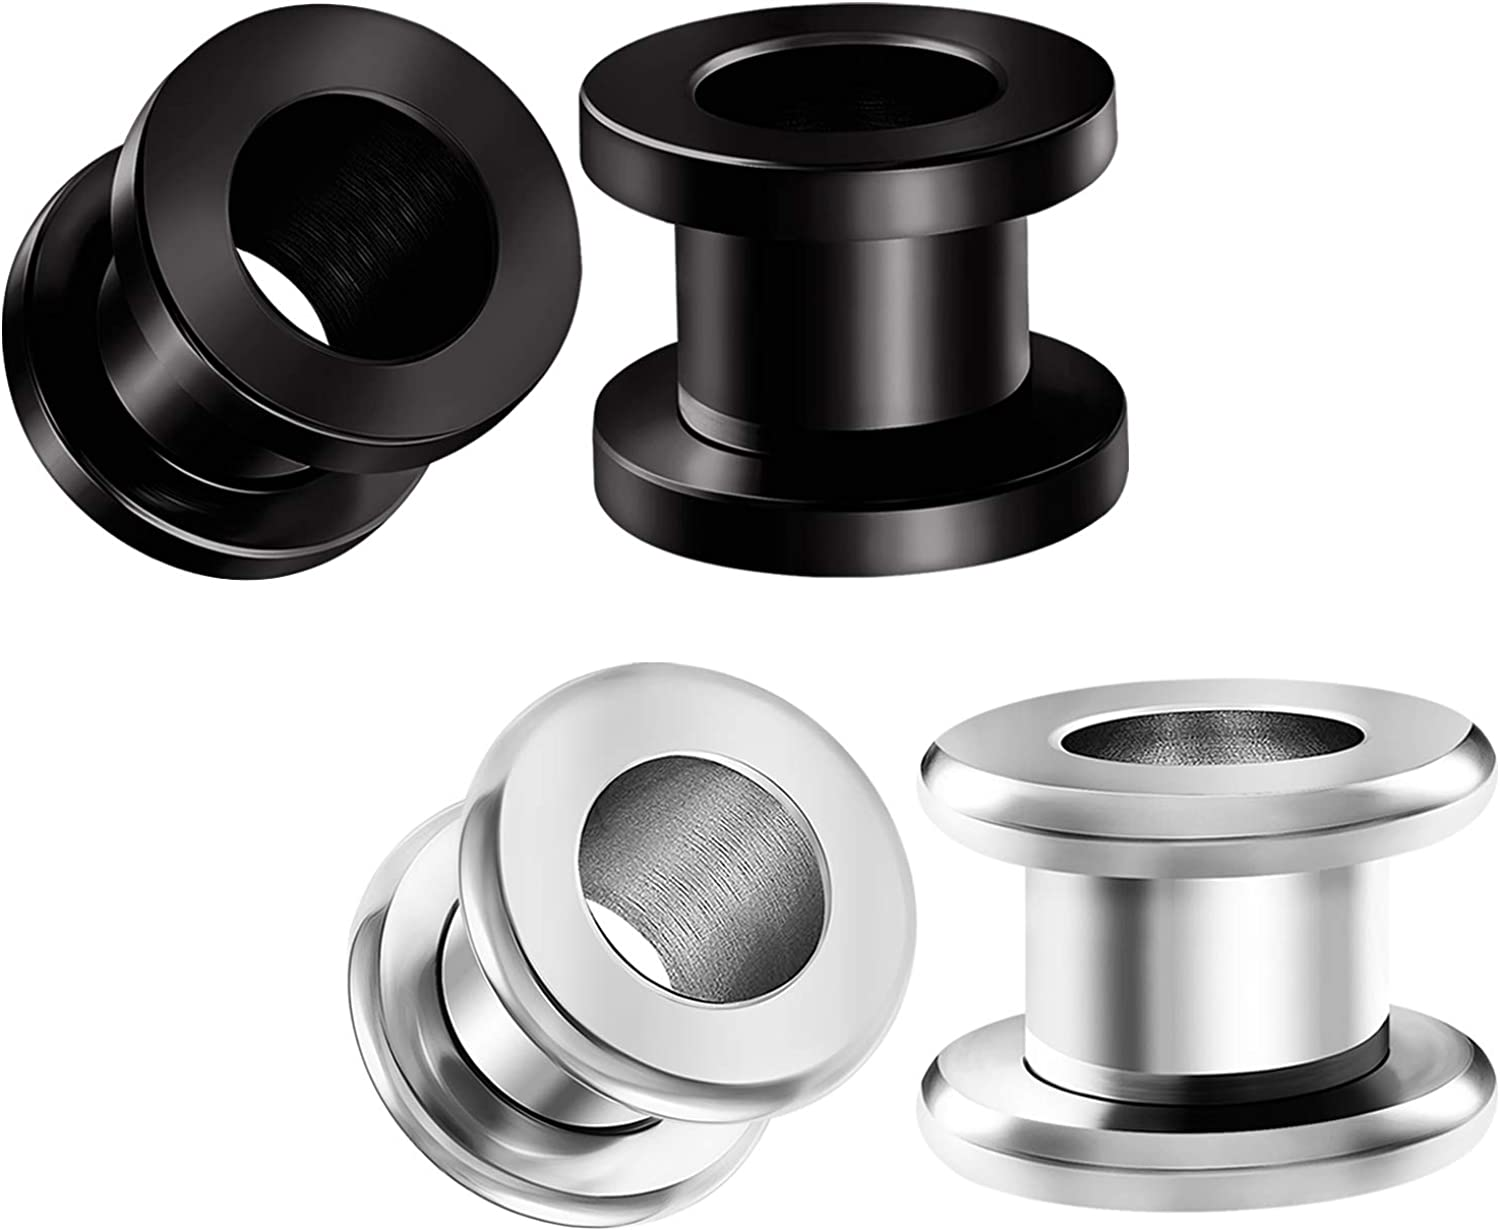 BIG GAUGES 2 Pairs 316L Surgical Steel Black Anodized Screw Flesh Tunnels Piercing Jewelry Stretcher Ear Rounded Plugs Earring Lobe